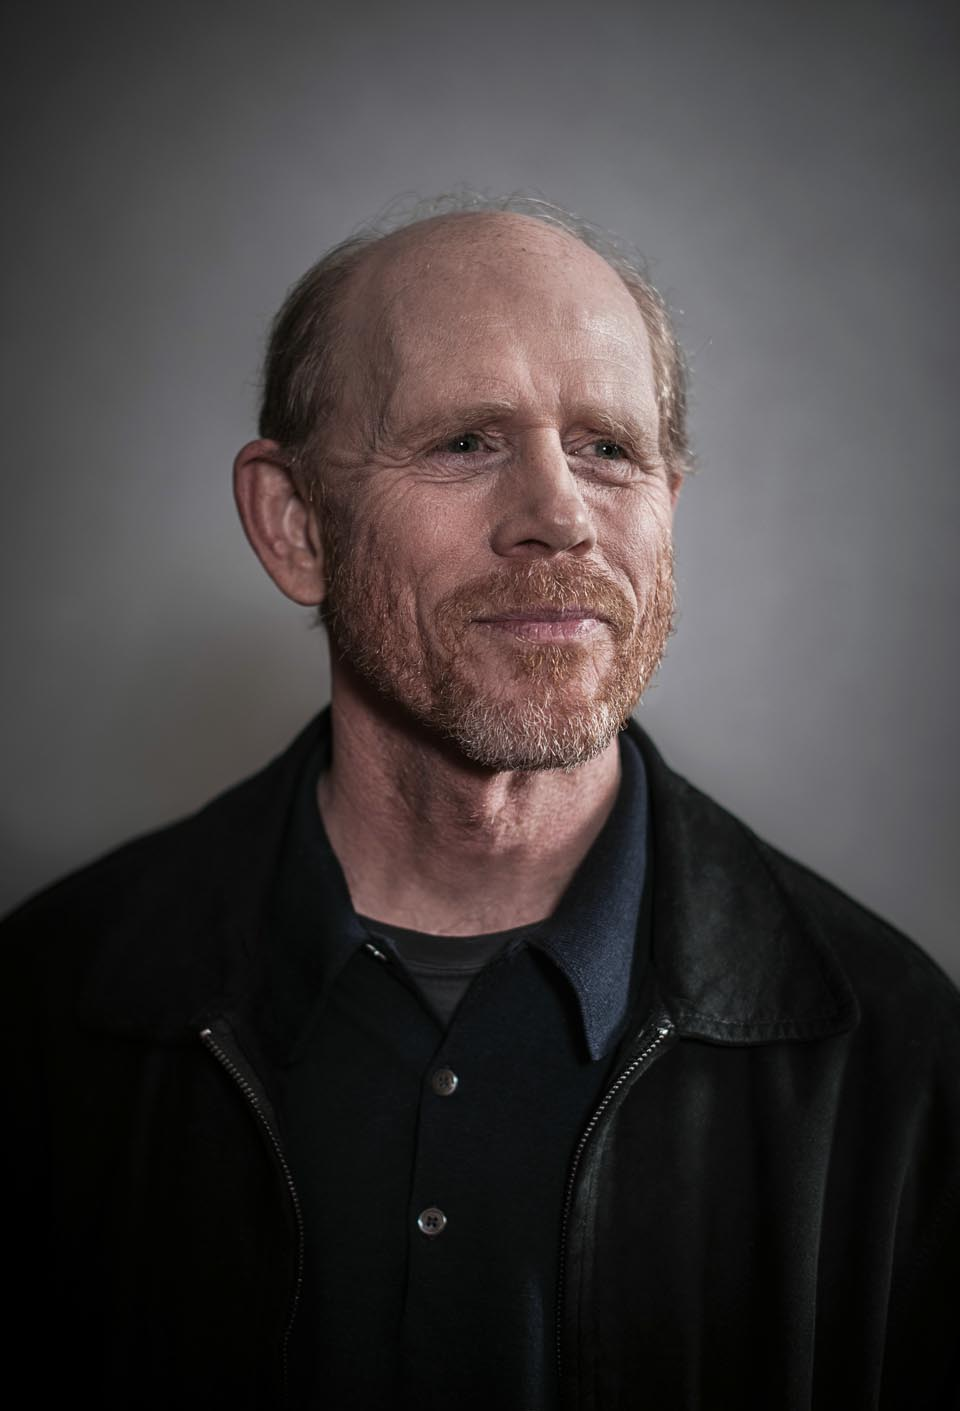 ron howard Solo: a star wars story director ron howard offers fans a little sneak peek at his brother clint howard's character in the upcoming film.